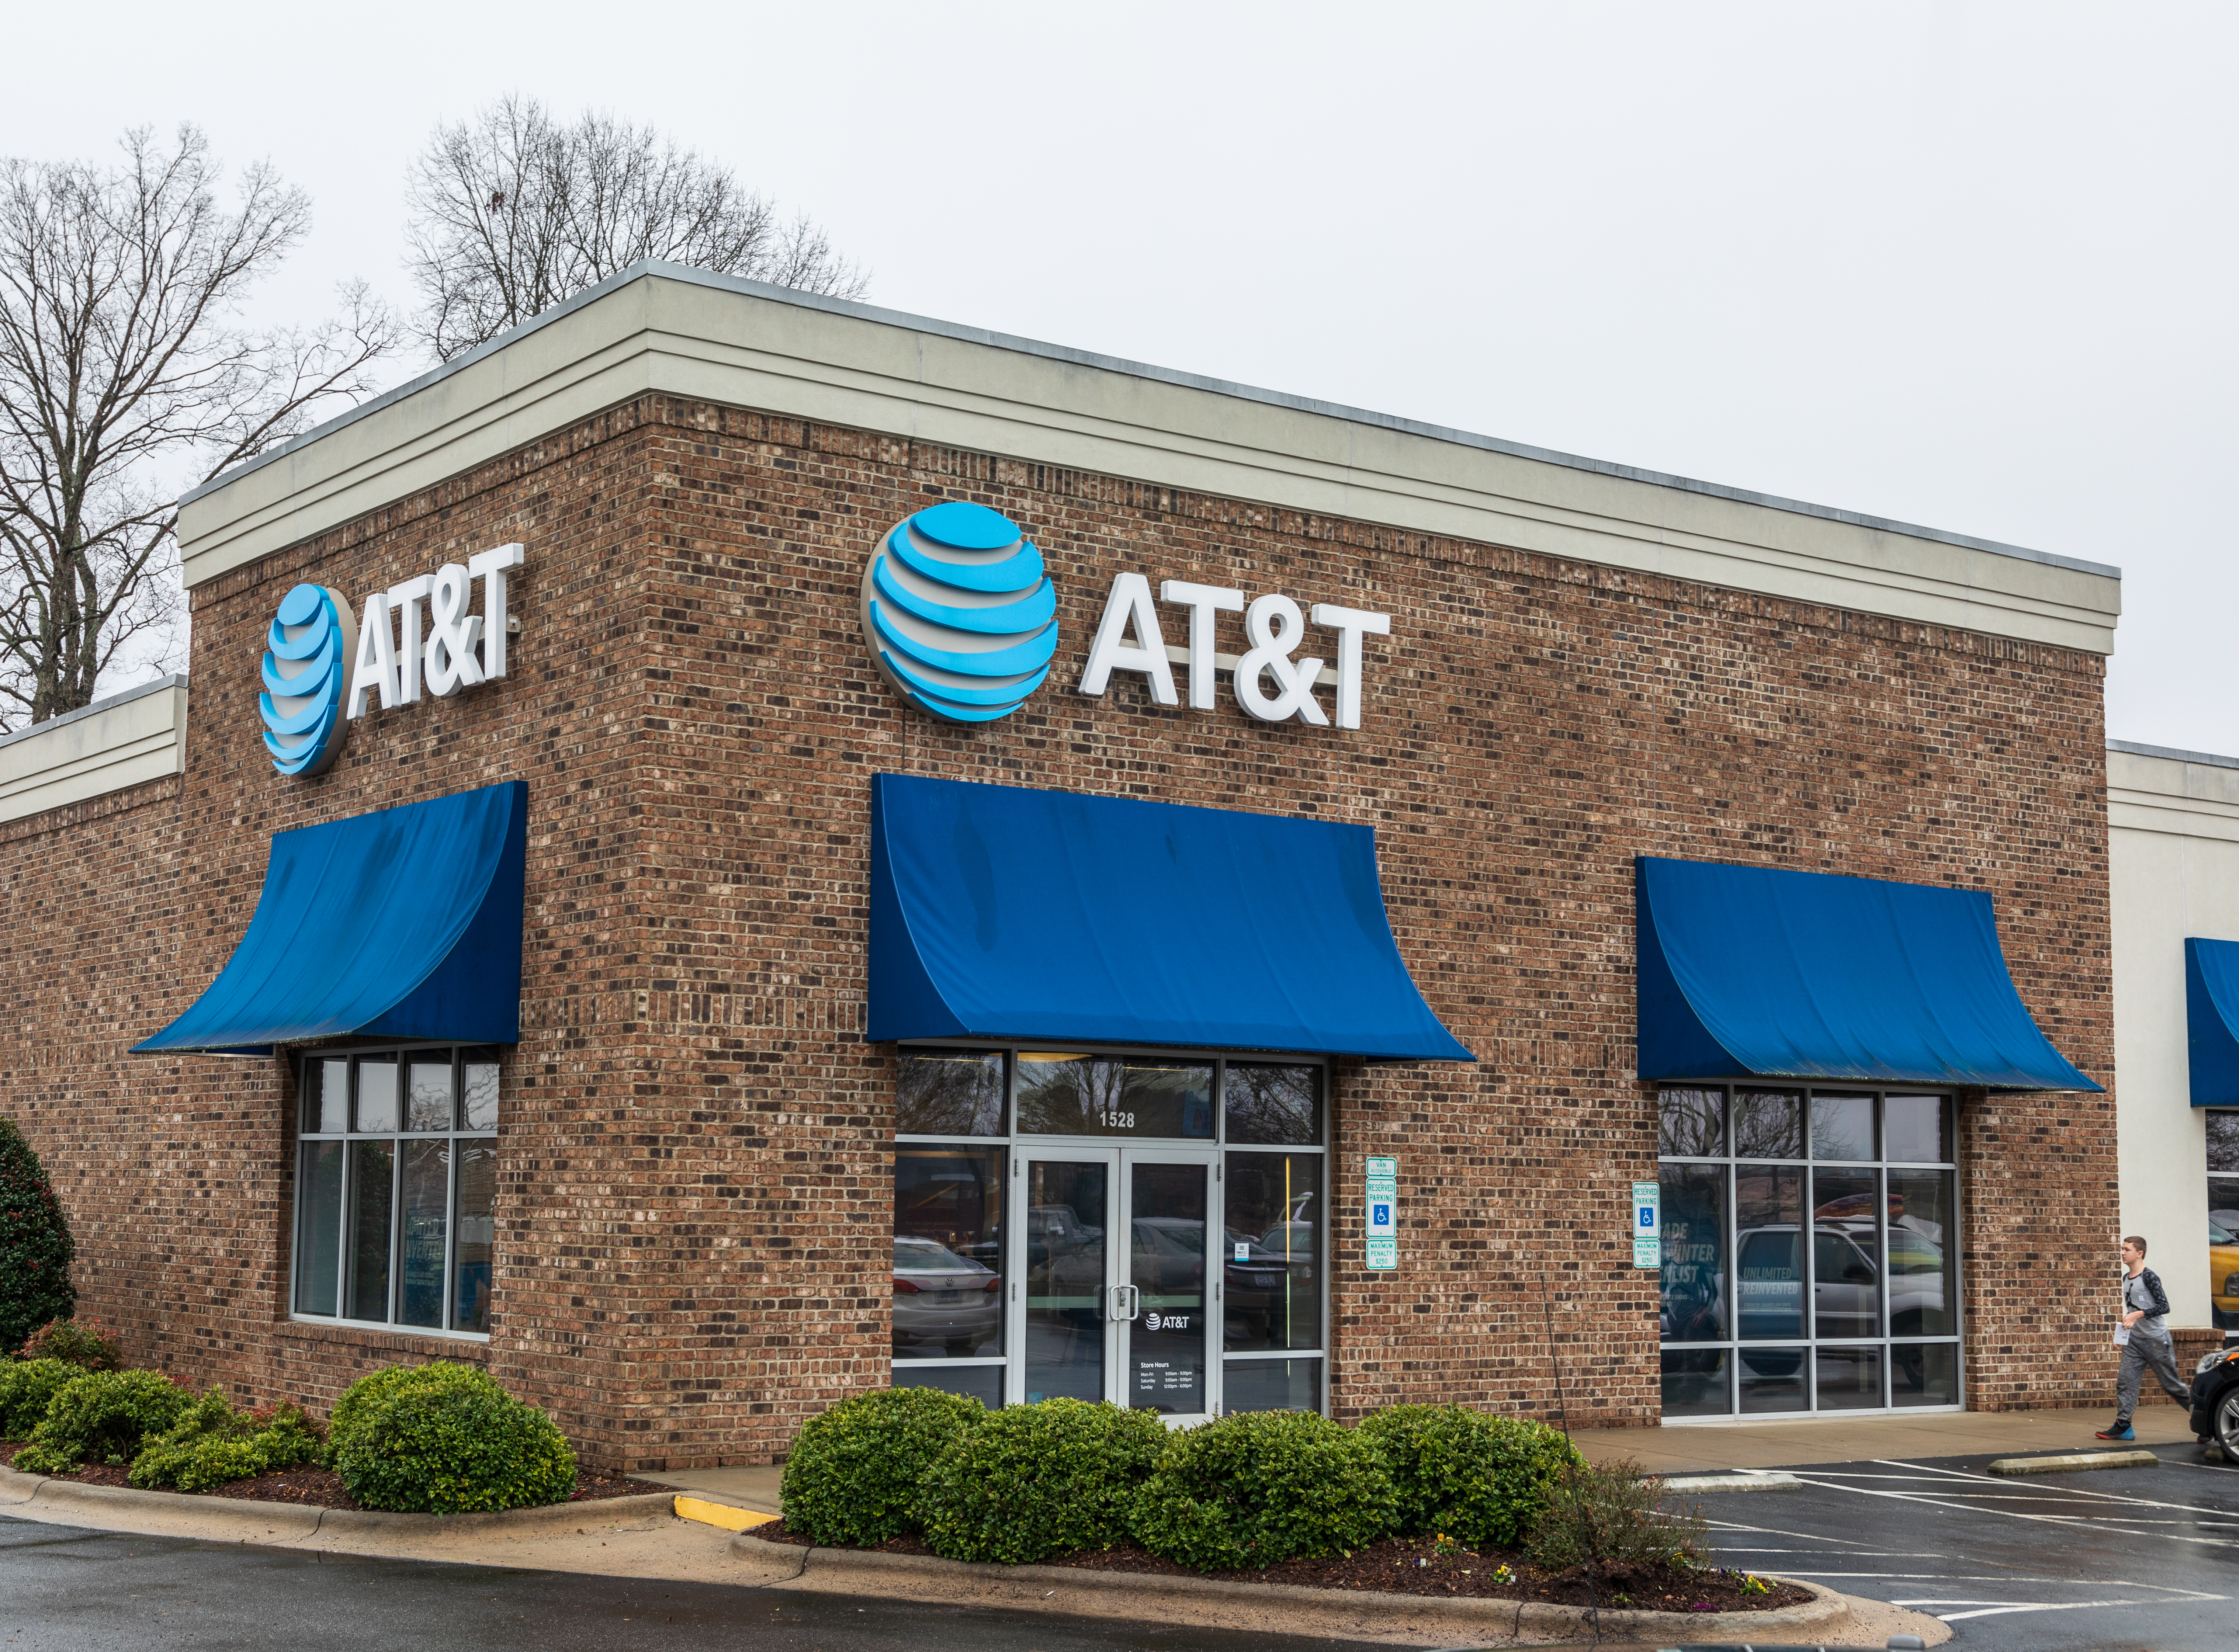 Hickory, NC, USA-1/3/19: A local AT&T retail store for wireless communications and devices.